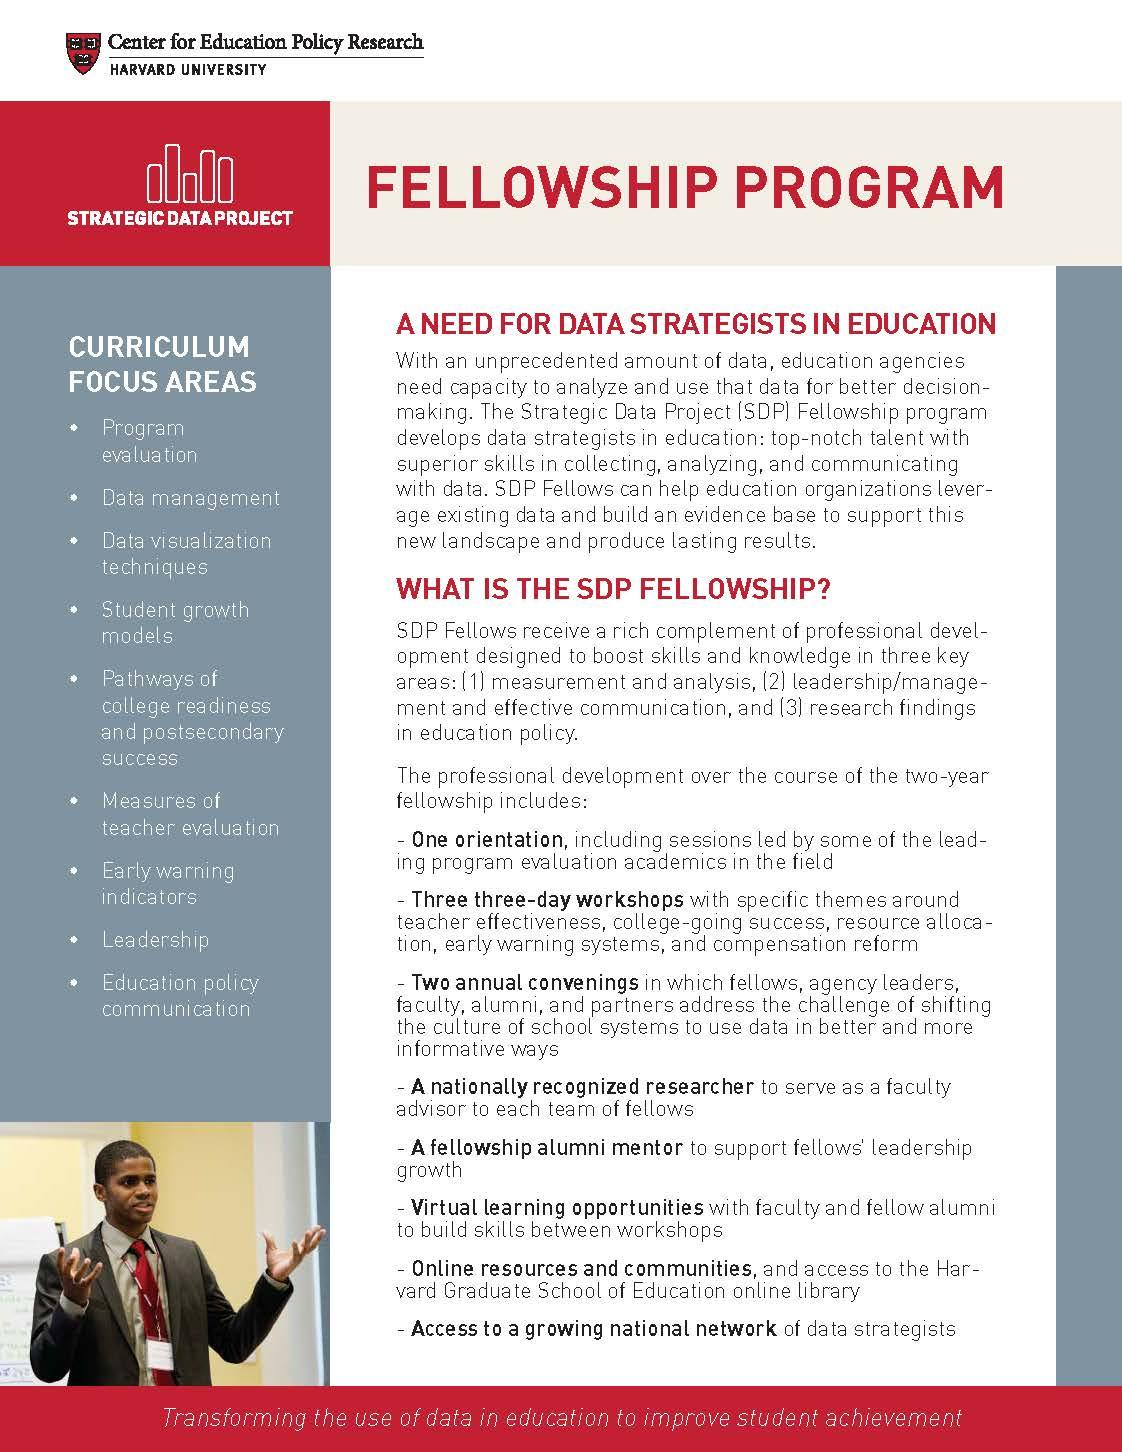 Fellowship program flyer